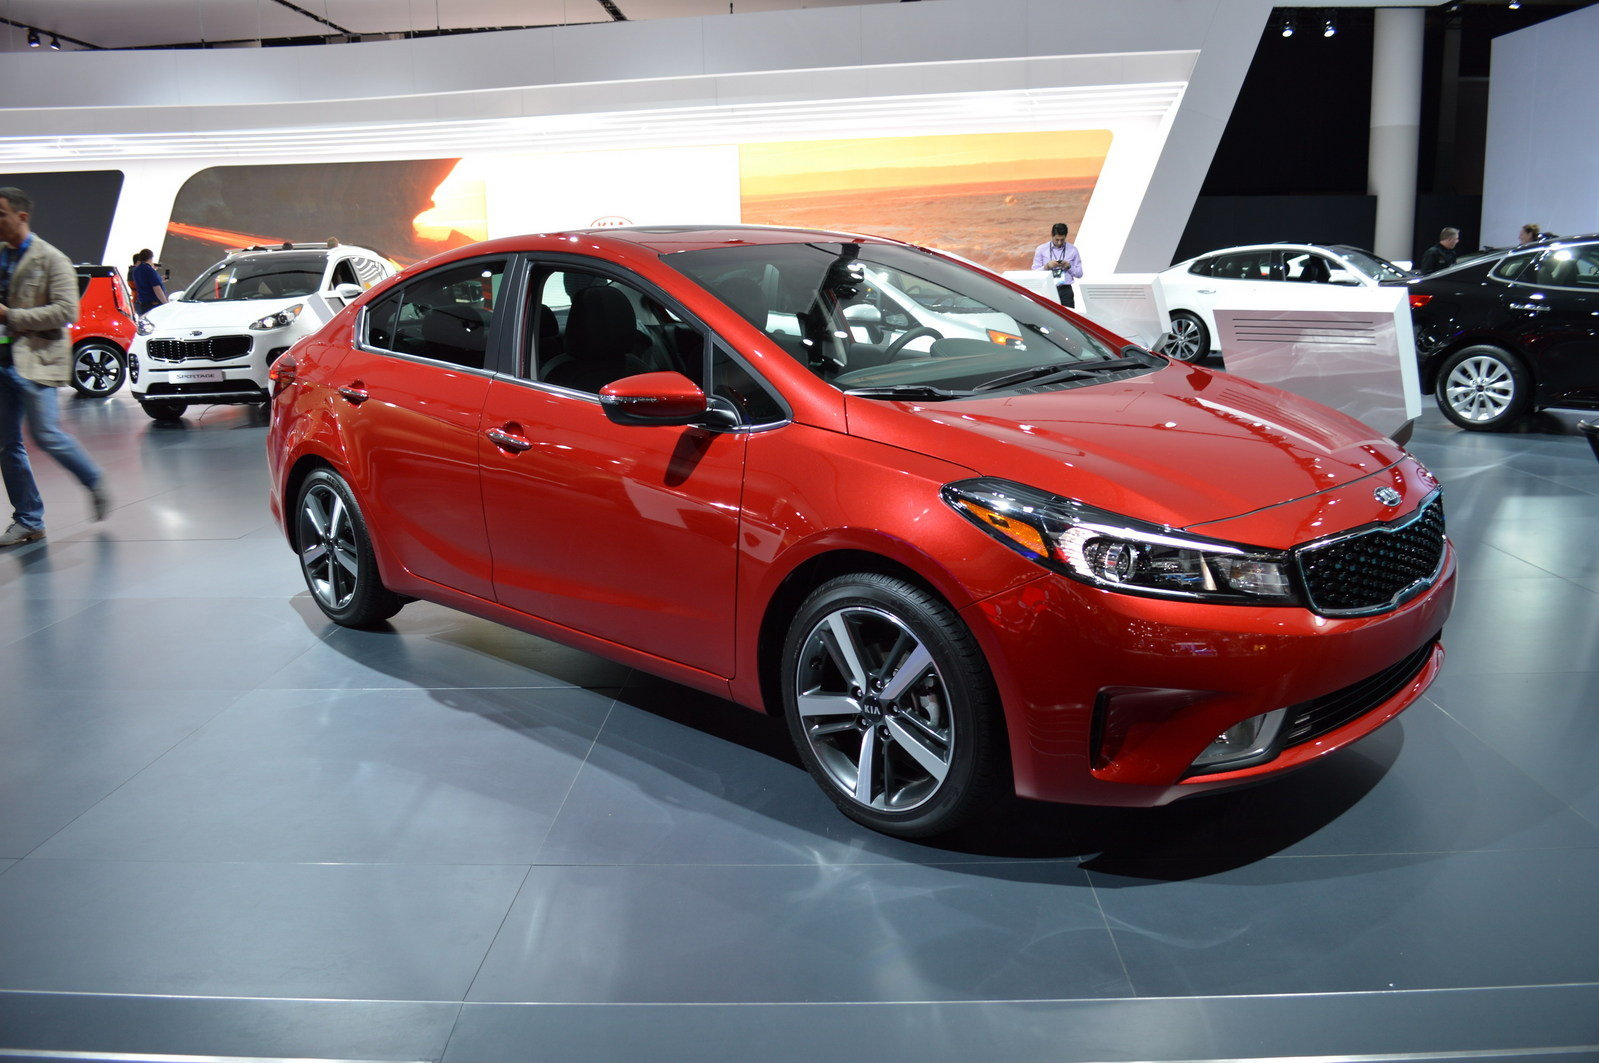 2017 kia forte picture 661880 car review top speed. Black Bedroom Furniture Sets. Home Design Ideas